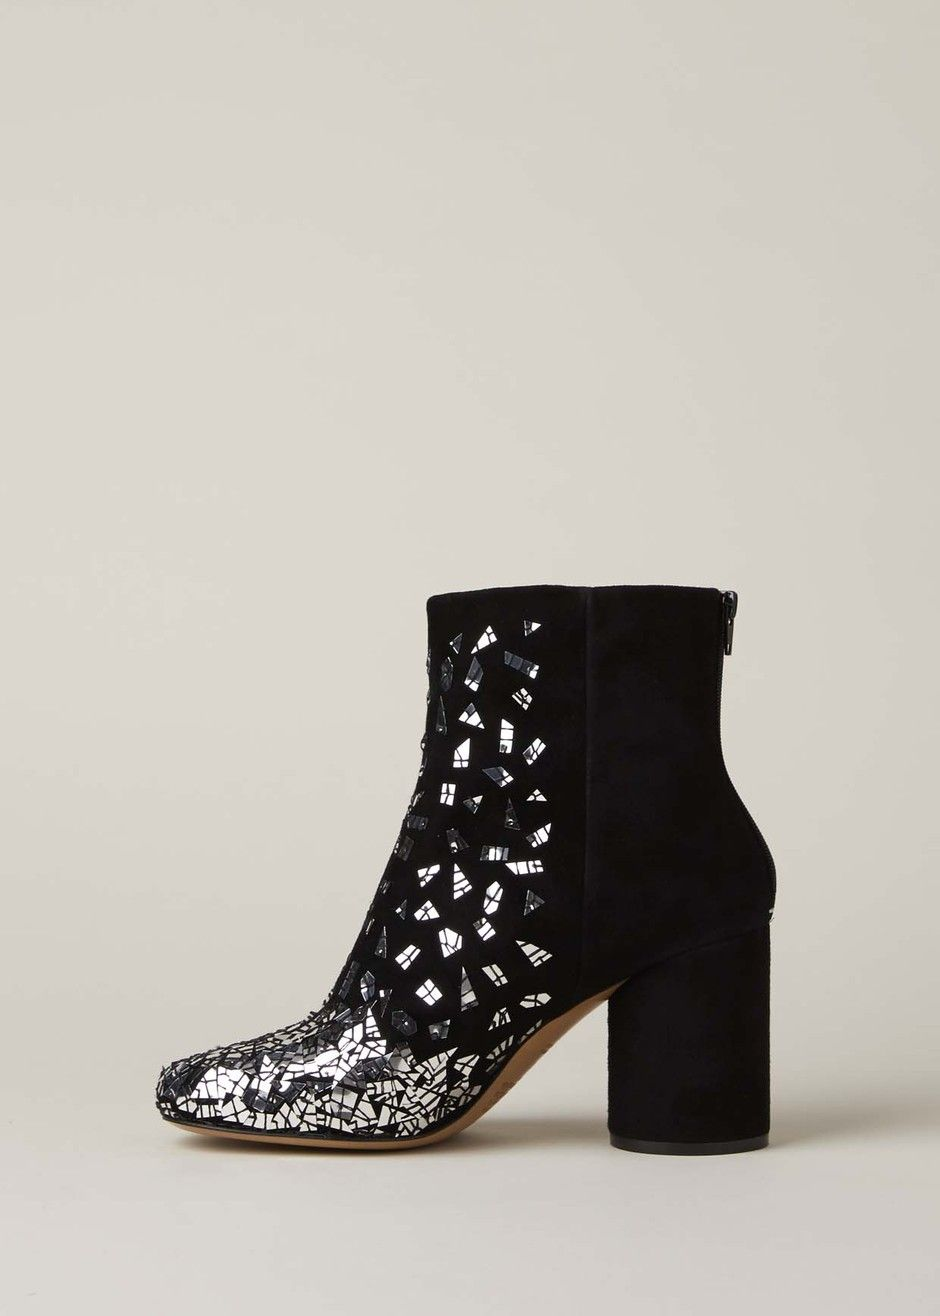 Maison Margiela Limited Edition Broken Mirrors Ankle Boot Black